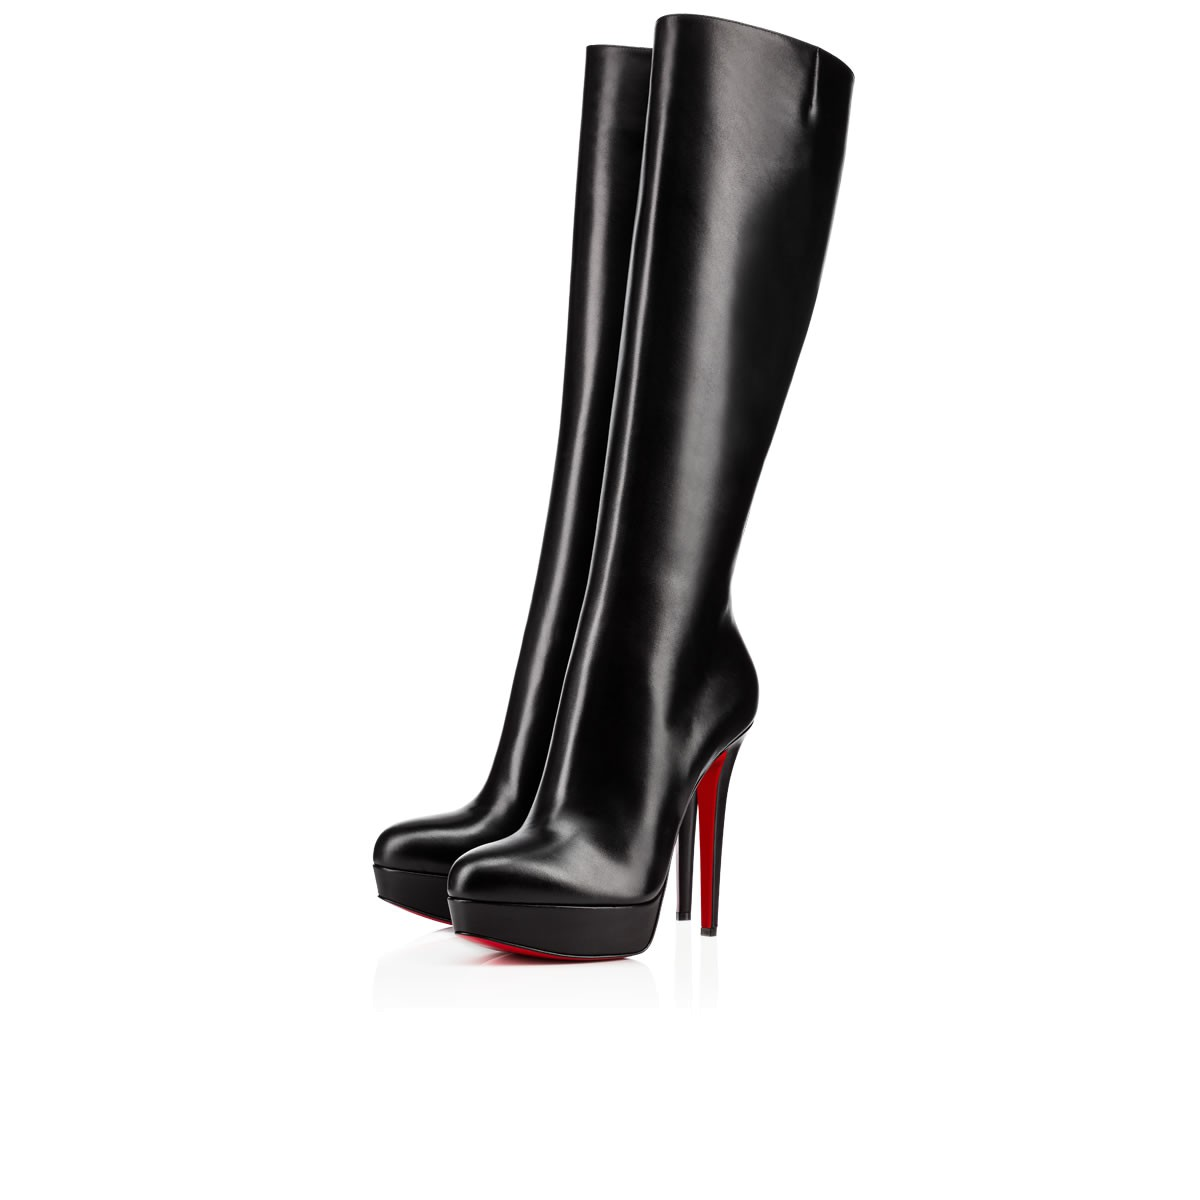 b154e2be5163 Bianca Botta 140 Black Leather - Women Shoes - Christian Louboutin